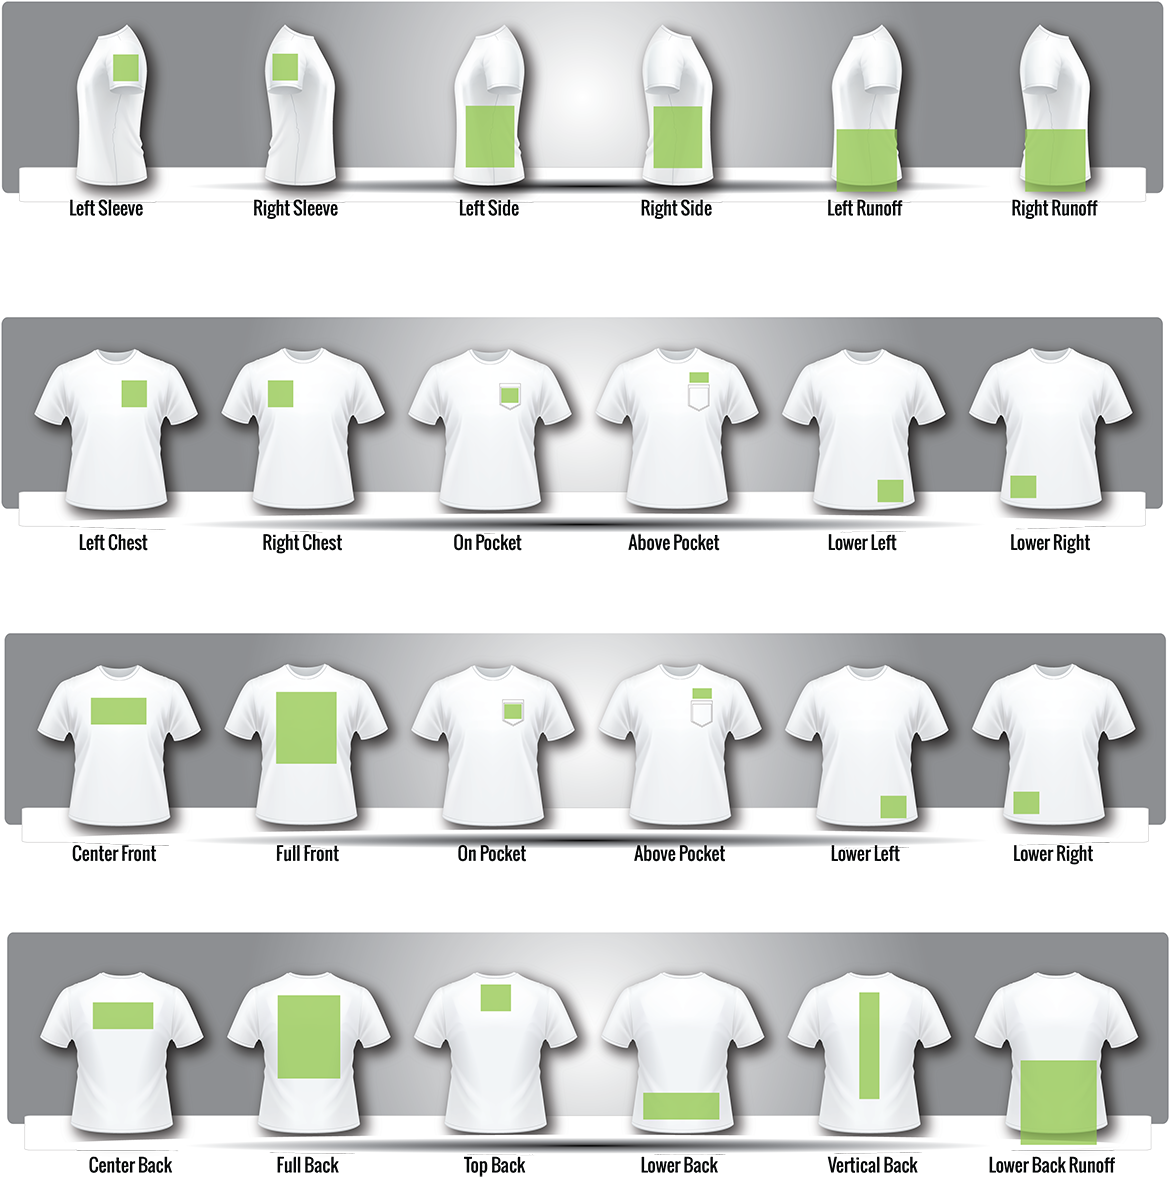 Design t shirt tips - Top Logo Design T Shirt Printing Logo Design Pricing Tips For Those On Budget